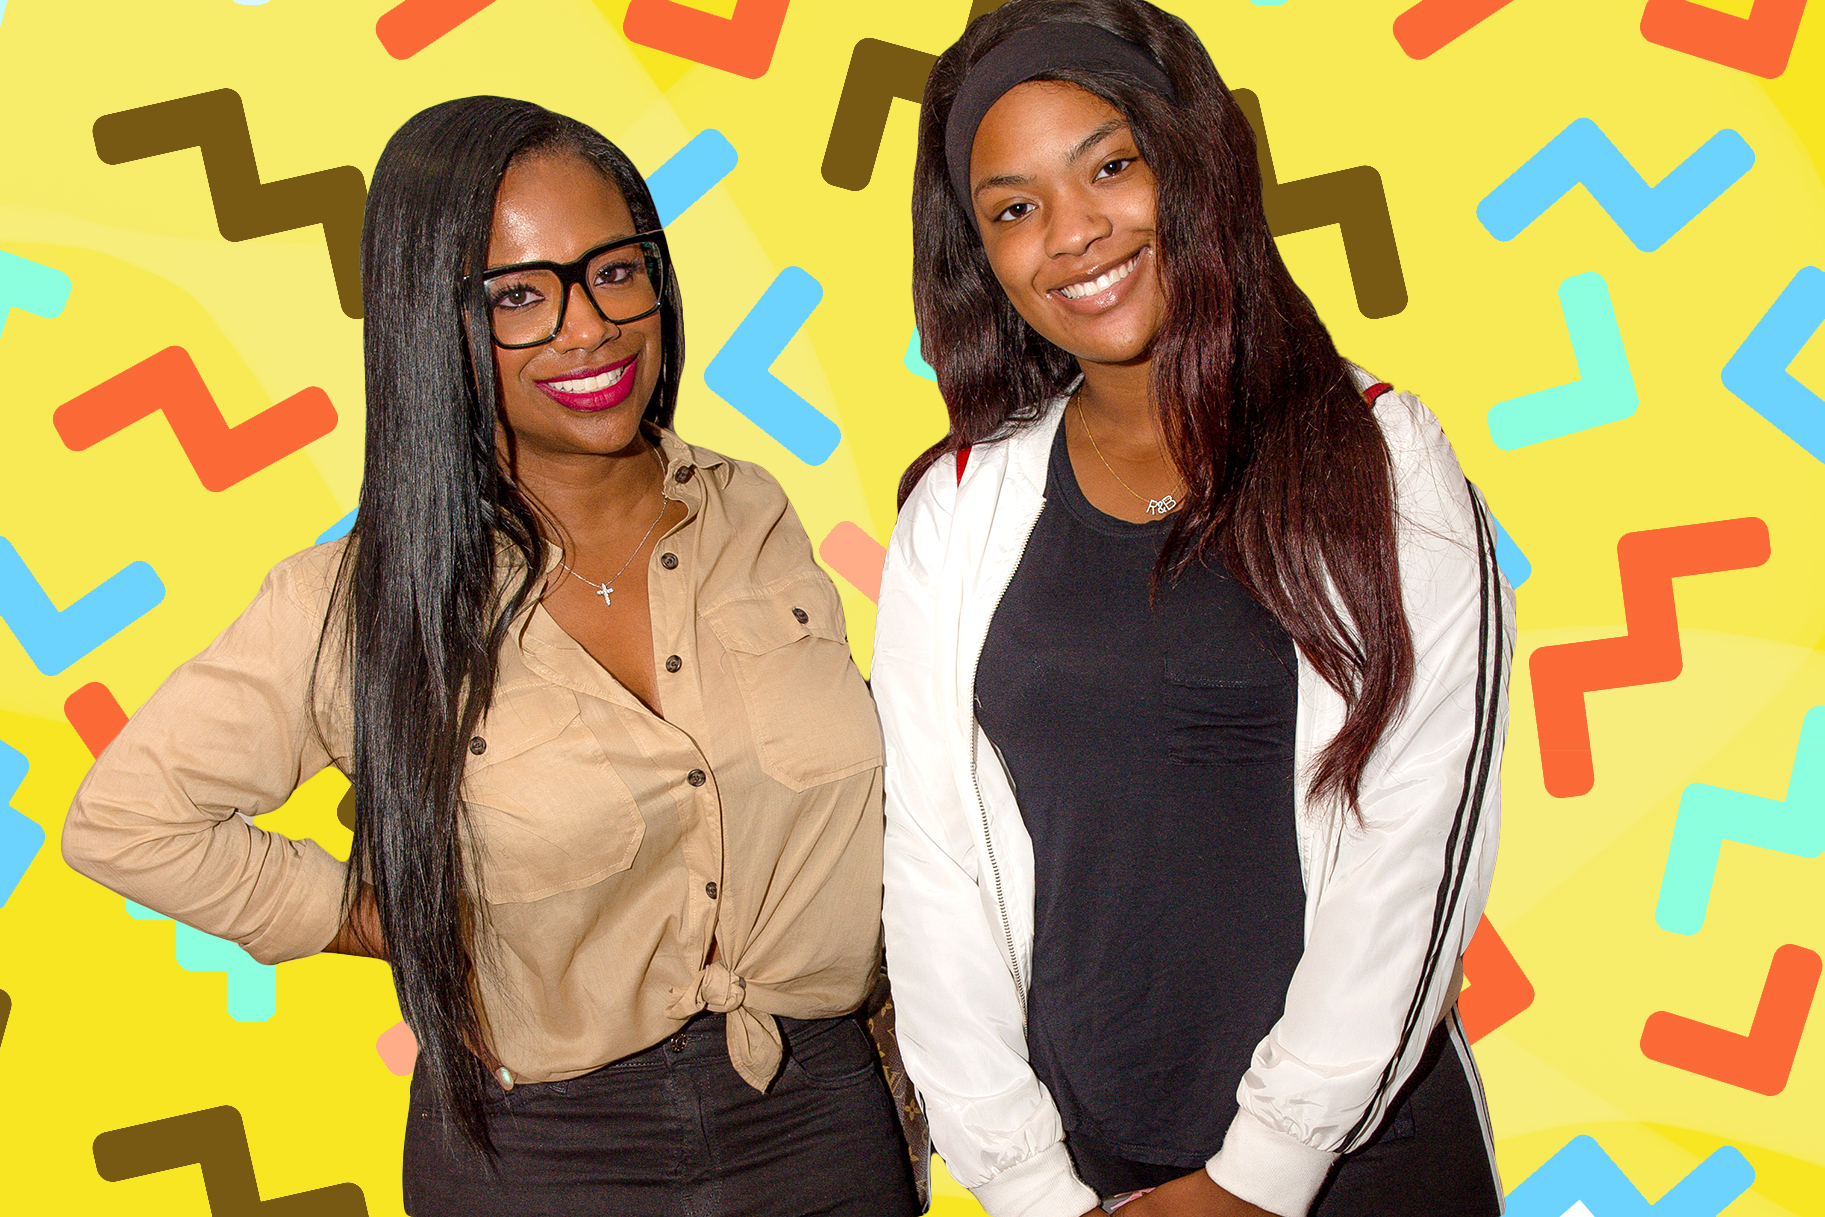 kandi-burruss-has-a-qa-with-riley-burruss-and-fans-see-a-kandi-burruss-show-coming